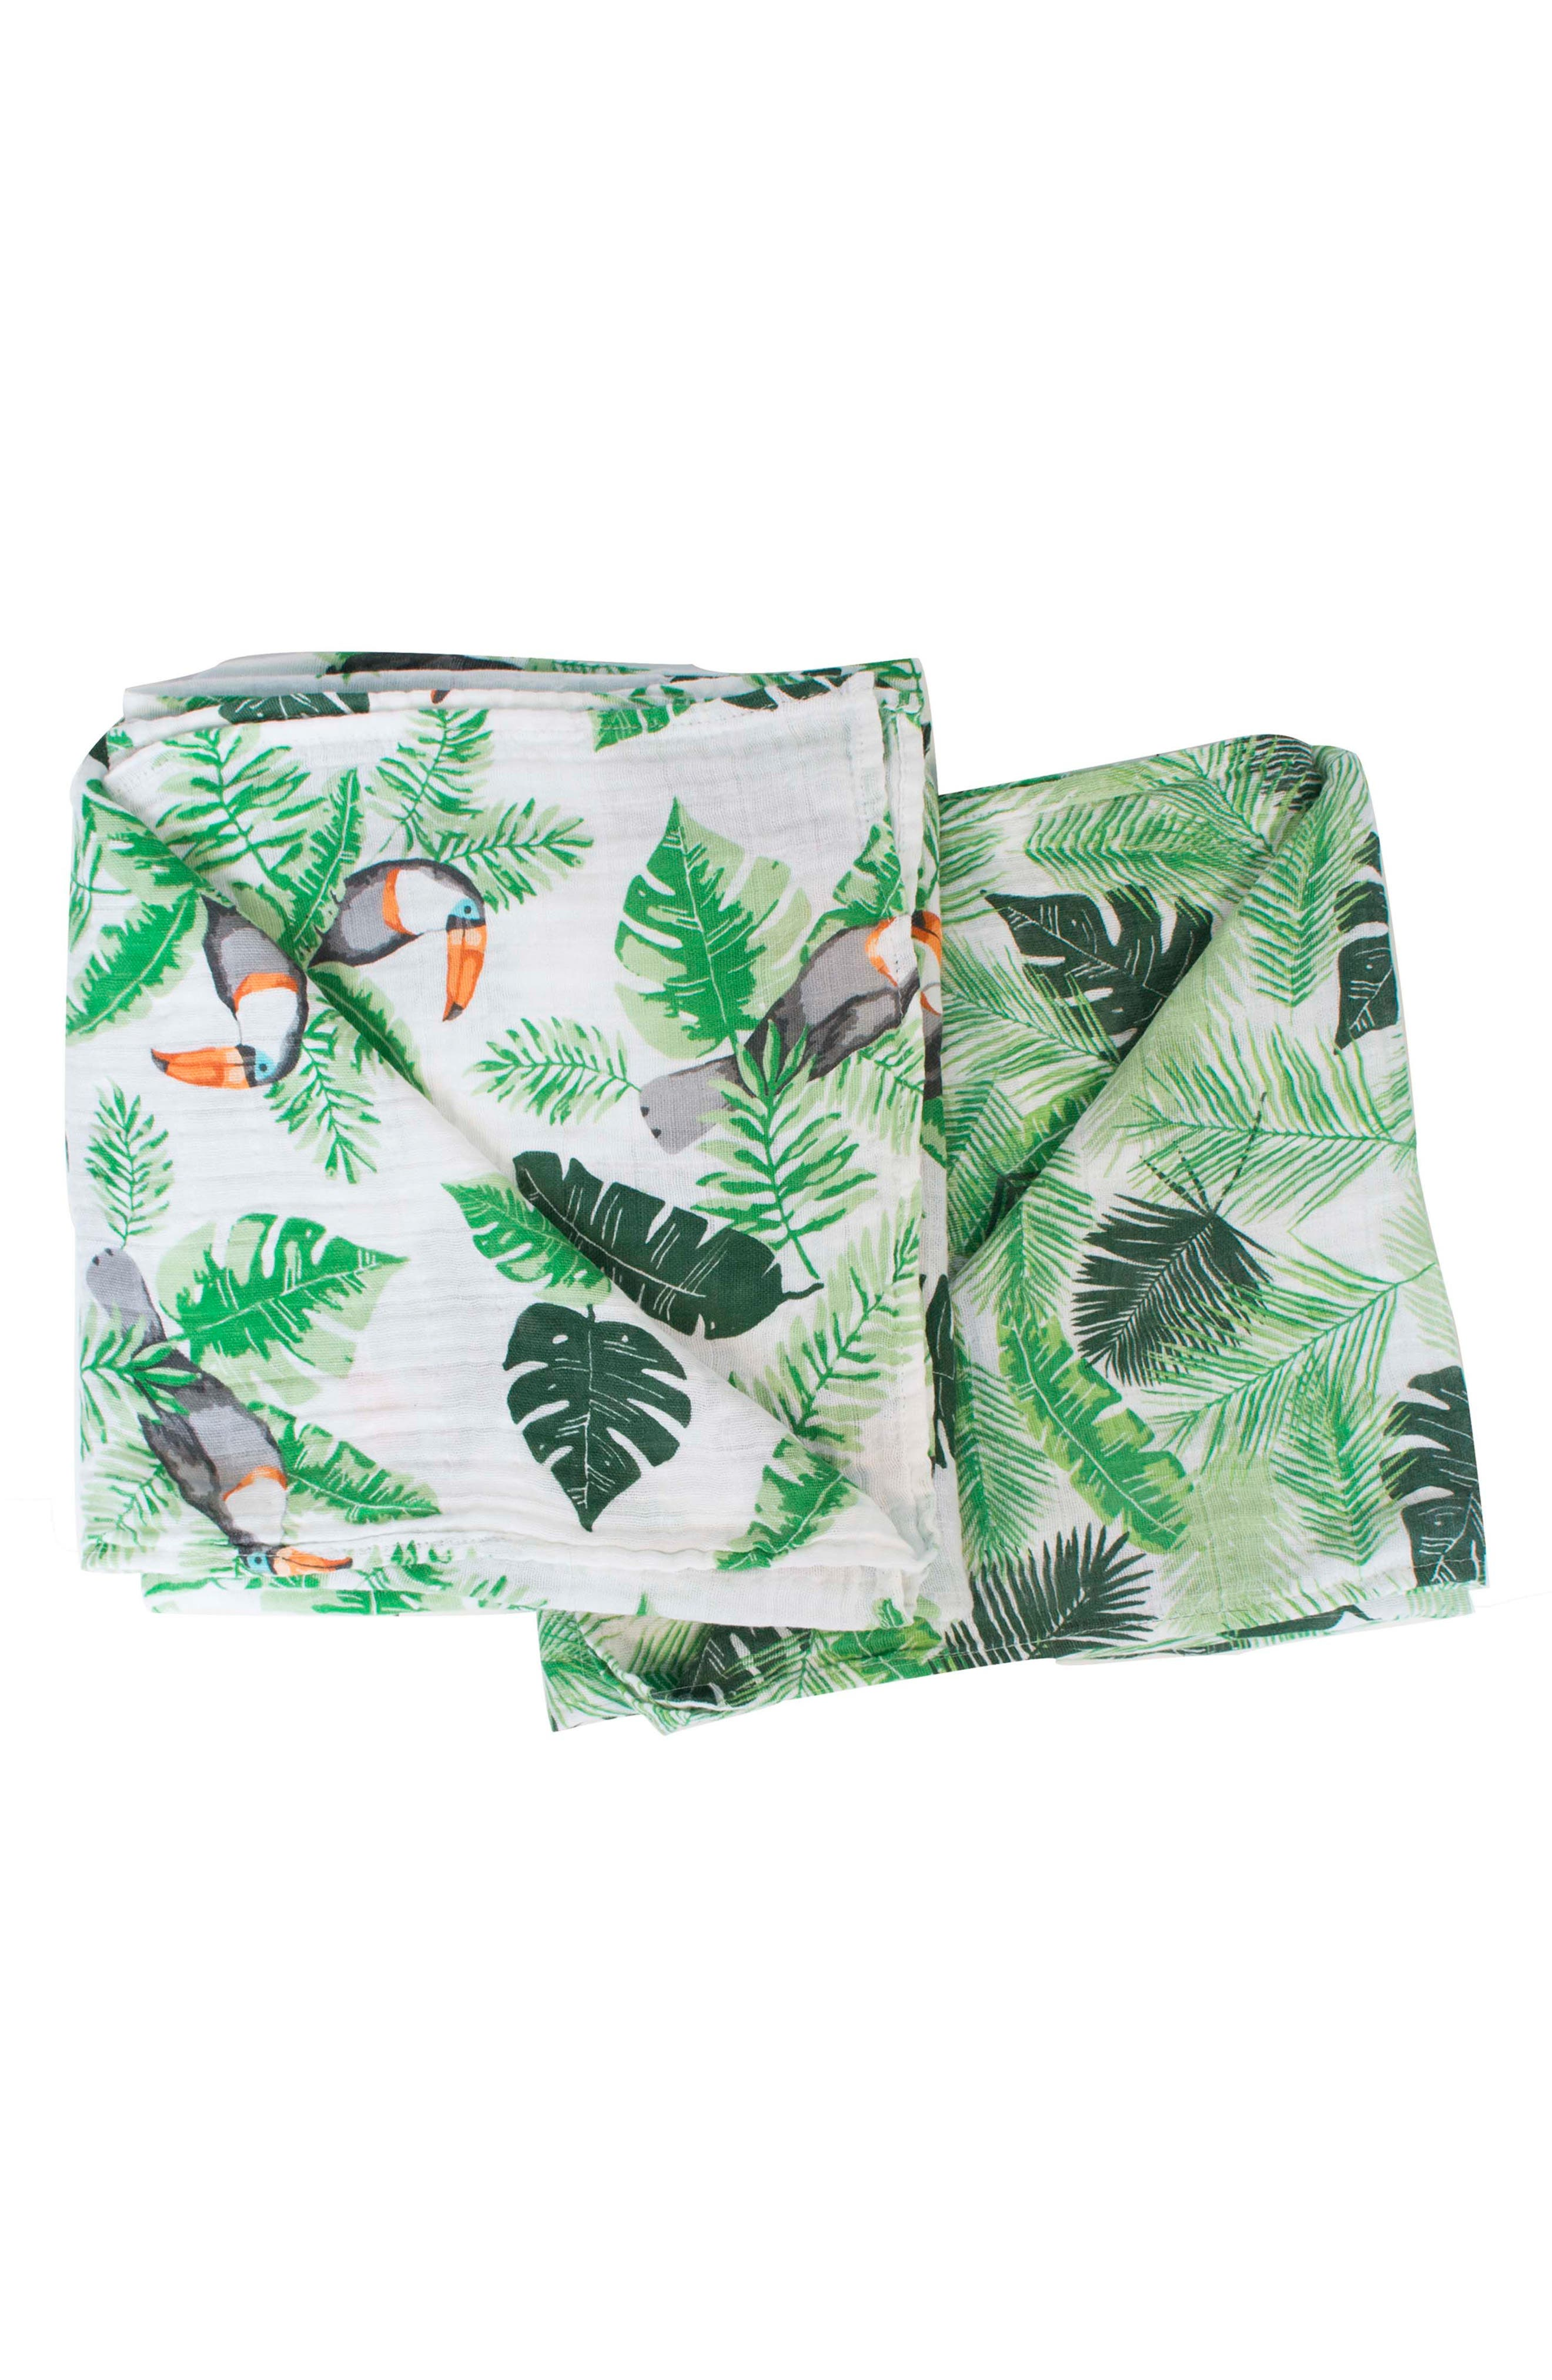 Classic 2-Pack Muslin Swaddle Blankets,                             Main thumbnail 1, color,                             RIO/ PALMS